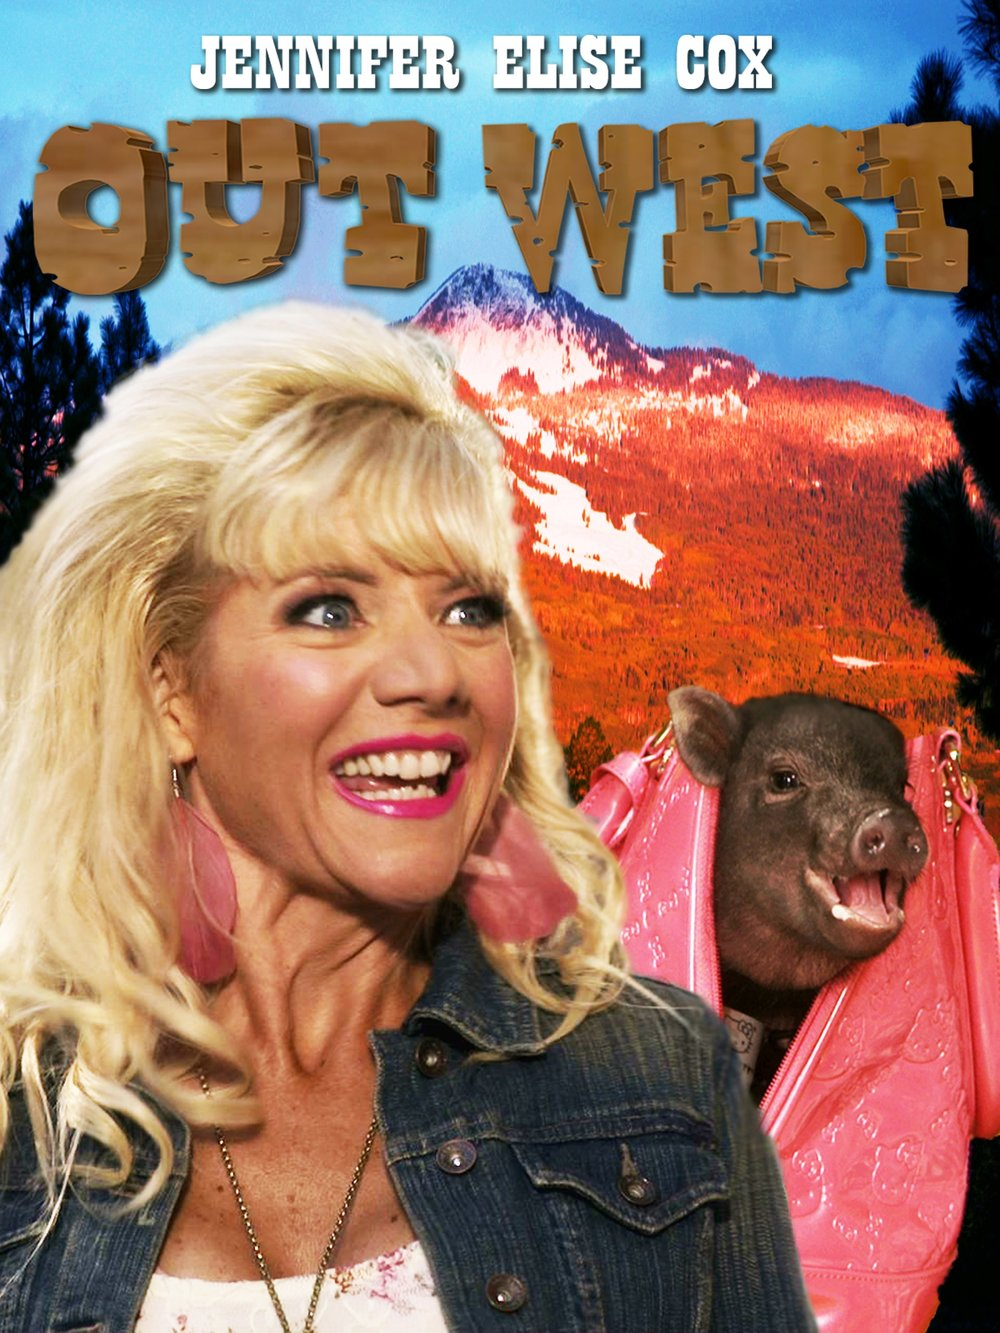 Here-OutWest-Full-Image-en-US-R1.jpg